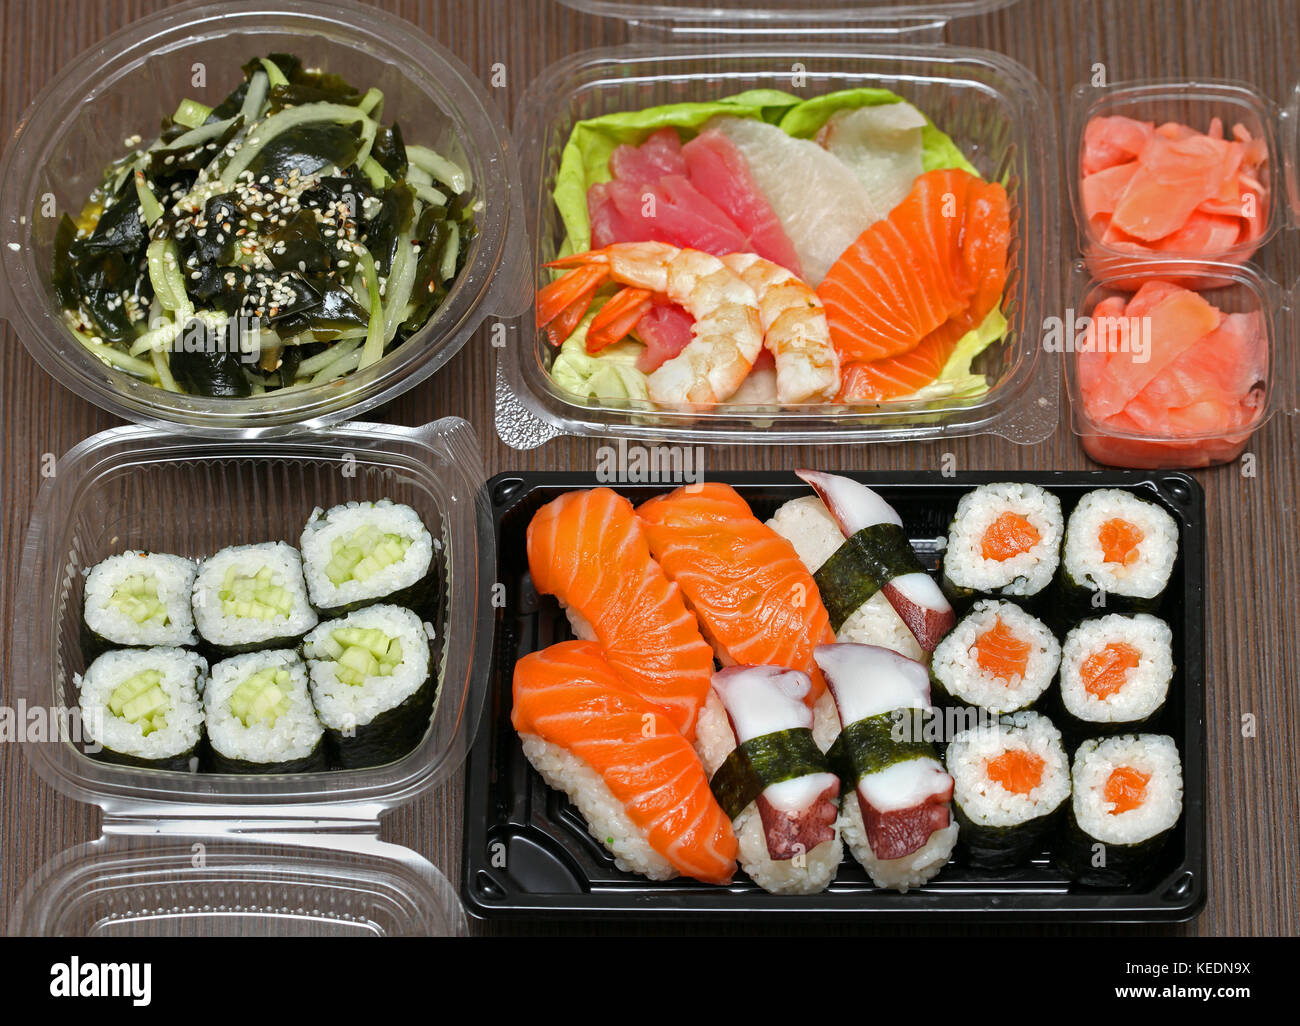 Takeaway Japanese food assortment on wooden table - Stock Image